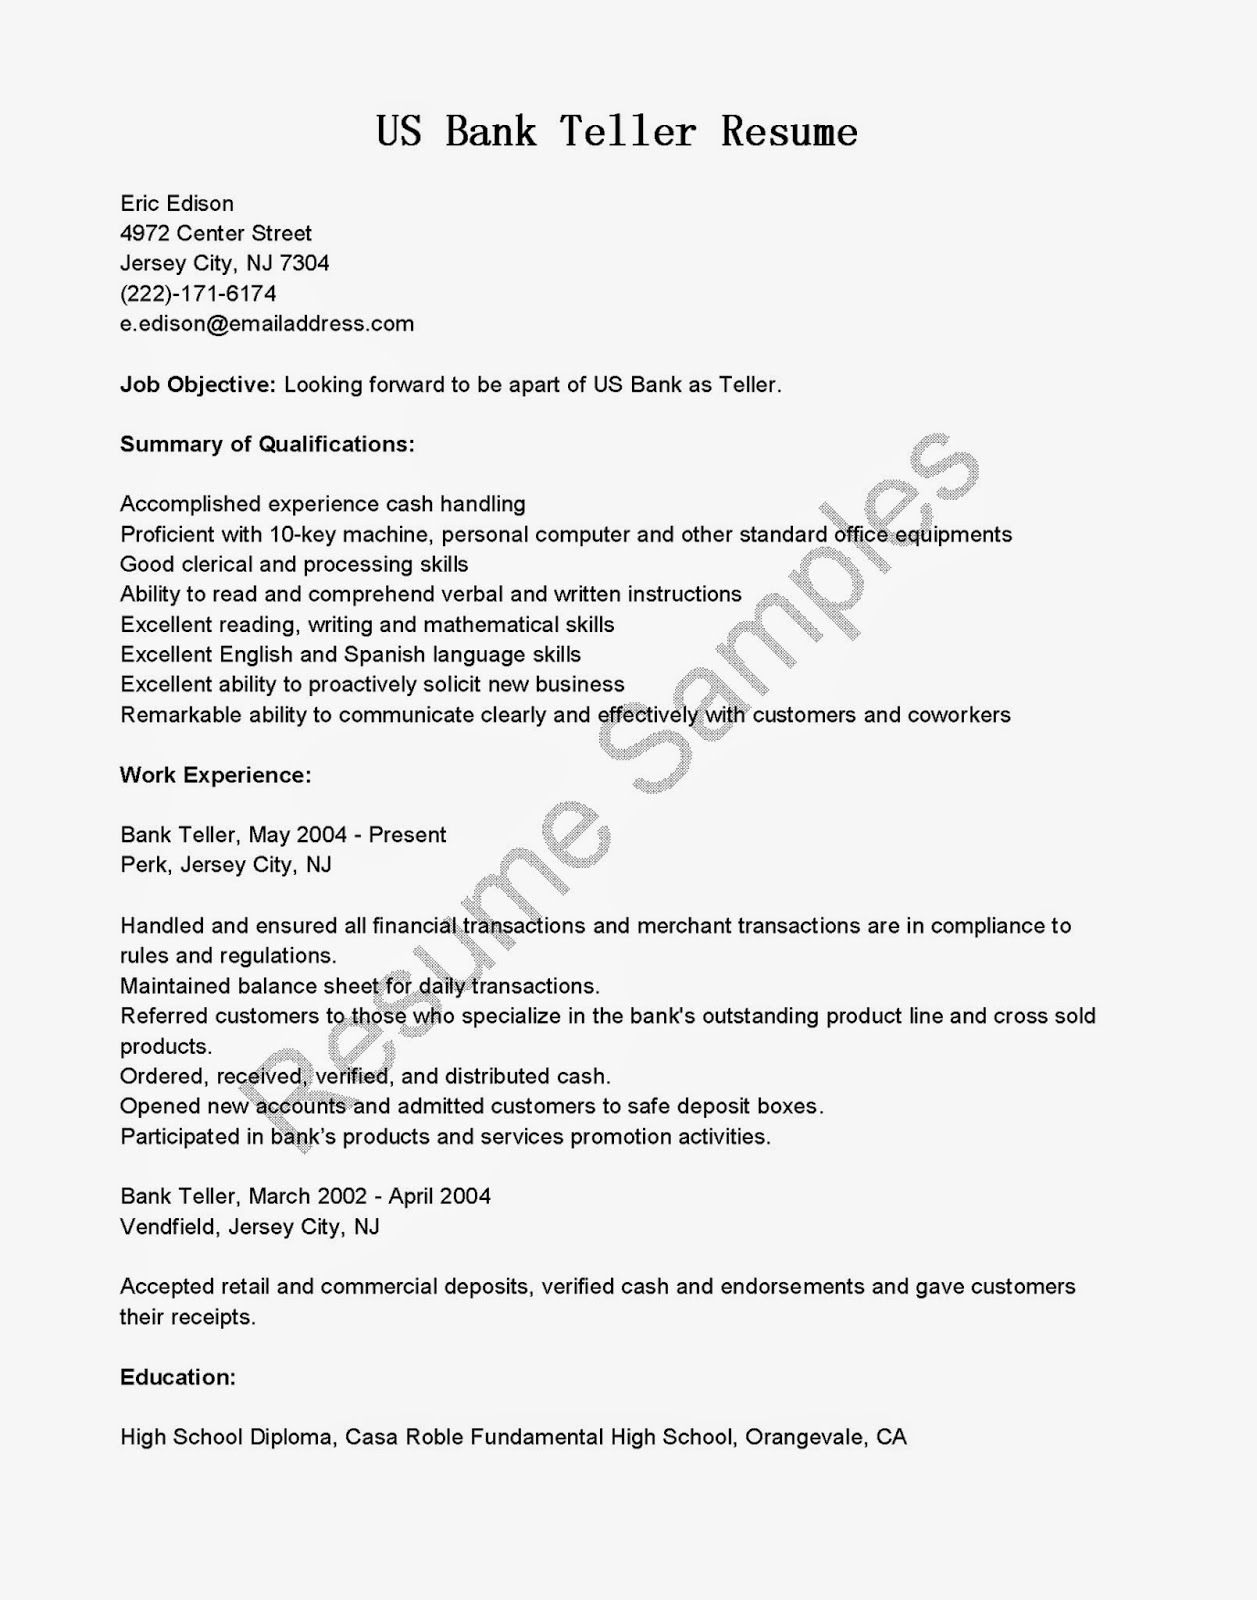 resume samples bank teller sample position writing - Resume Skills For Bank Teller